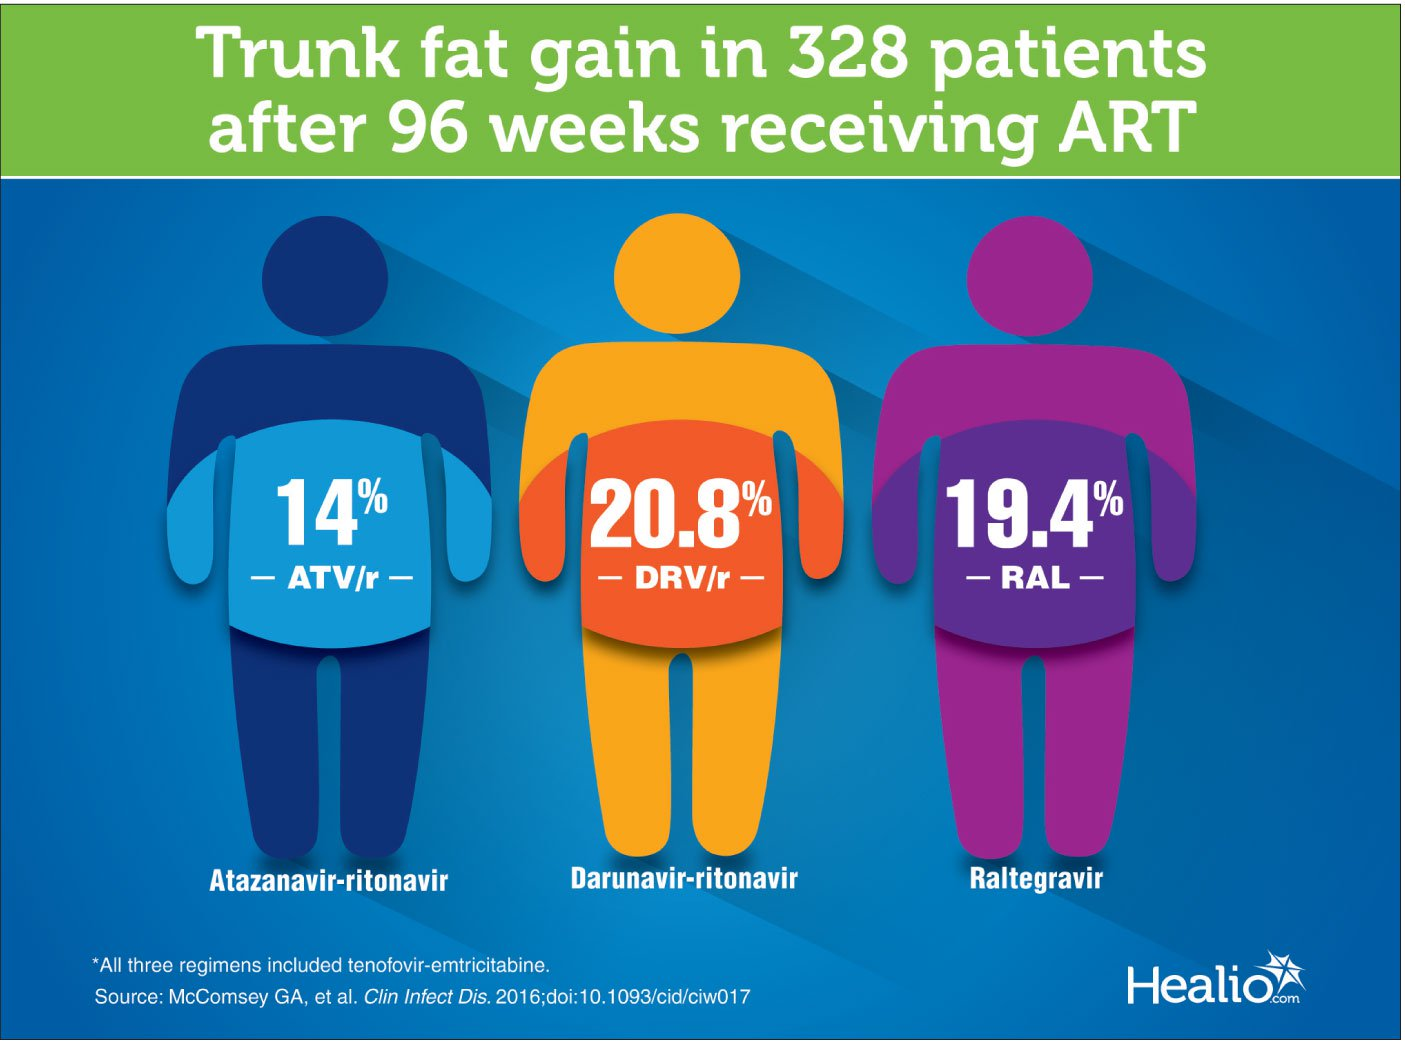 Clinicians face new challenge in HIV: Obesity